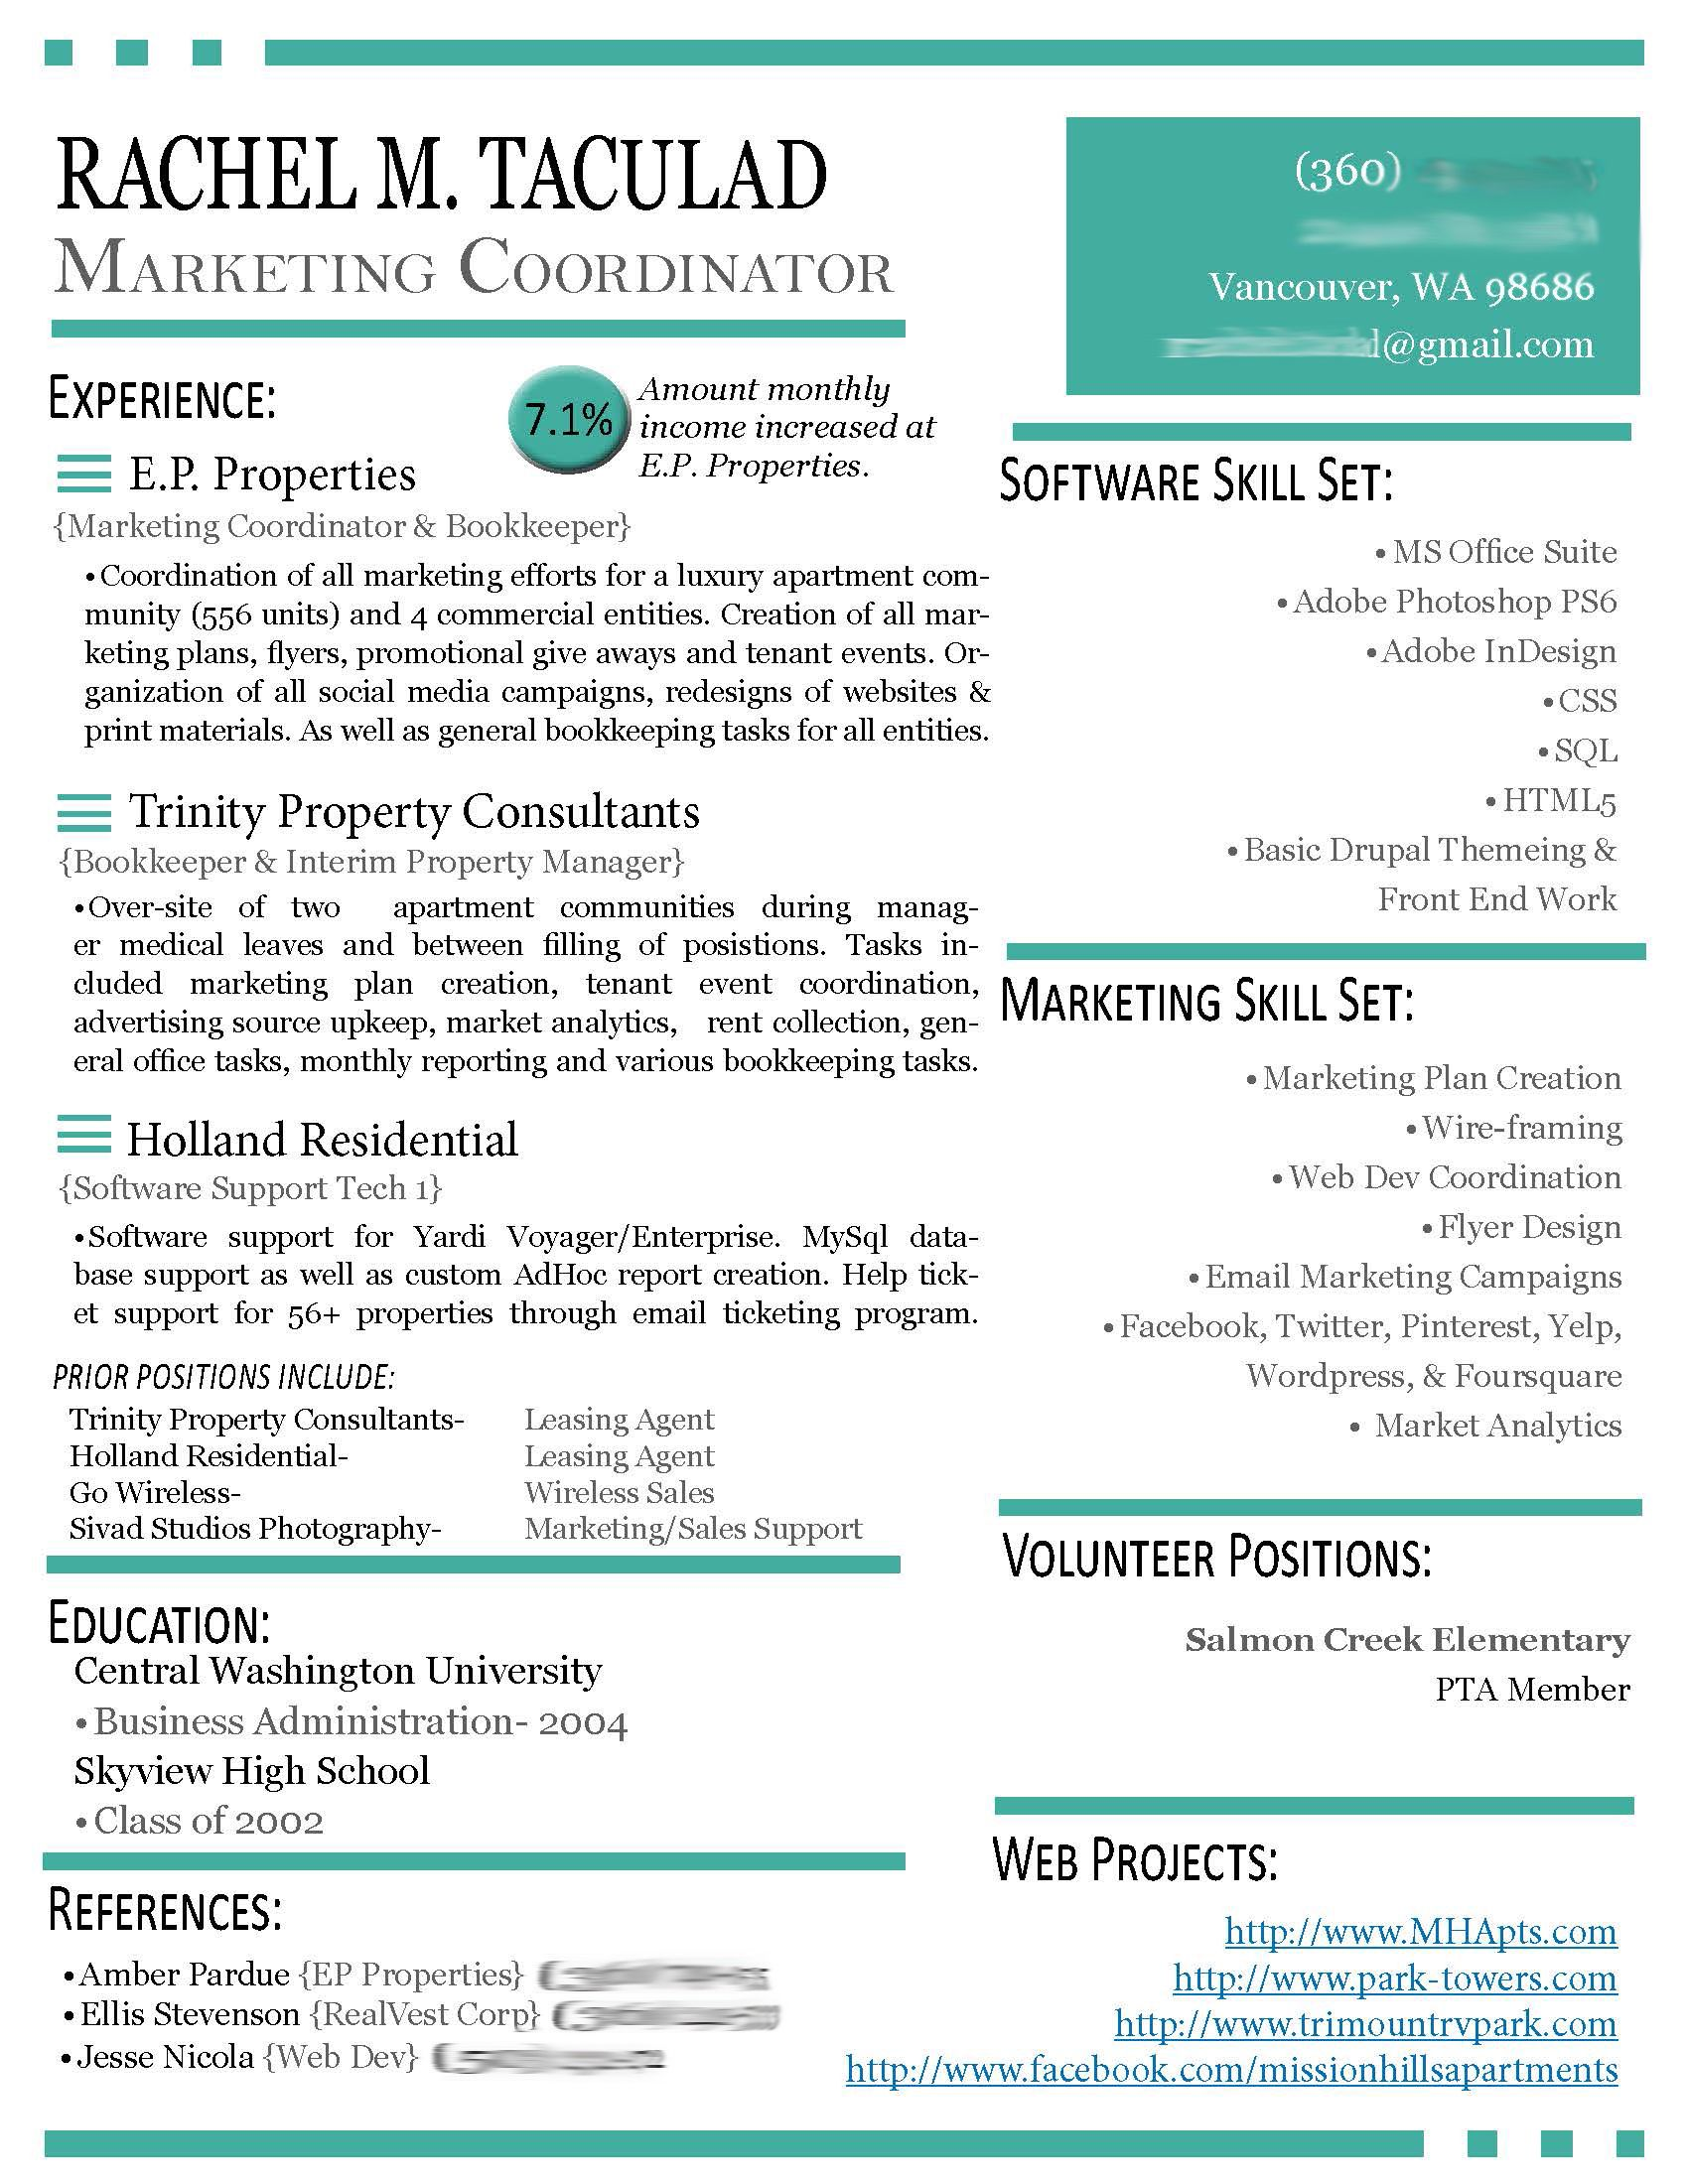 Opposenewapstandardsus  Unique  Images About Work Stuff On Pinterest  Resume Professional  With Lovely  Images About Work Stuff On Pinterest  Resume Professional Resume Template And Resume Templates With Comely Resume Template Latex Also Education On A Resume In Addition Business Resume Examples And Graphic Design Resume Examples As Well As Beautiful Resumes Additionally Quality Control Resume From Pinterestcom With Opposenewapstandardsus  Lovely  Images About Work Stuff On Pinterest  Resume Professional  With Comely  Images About Work Stuff On Pinterest  Resume Professional Resume Template And Resume Templates And Unique Resume Template Latex Also Education On A Resume In Addition Business Resume Examples From Pinterestcom